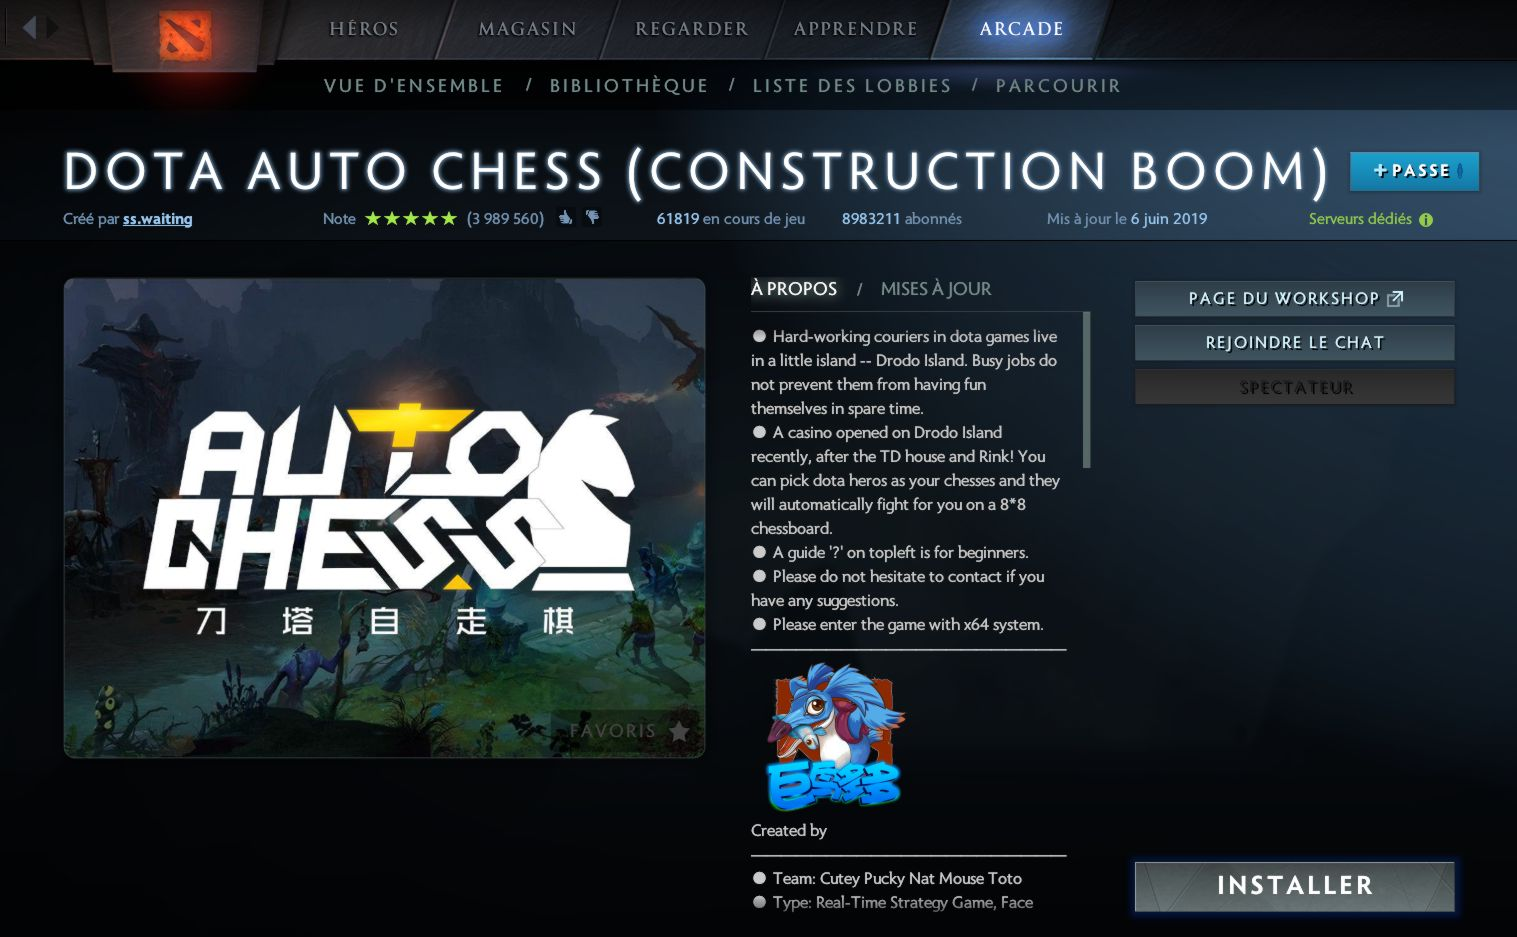 Auto Chess le mode Arcade de Dota 2